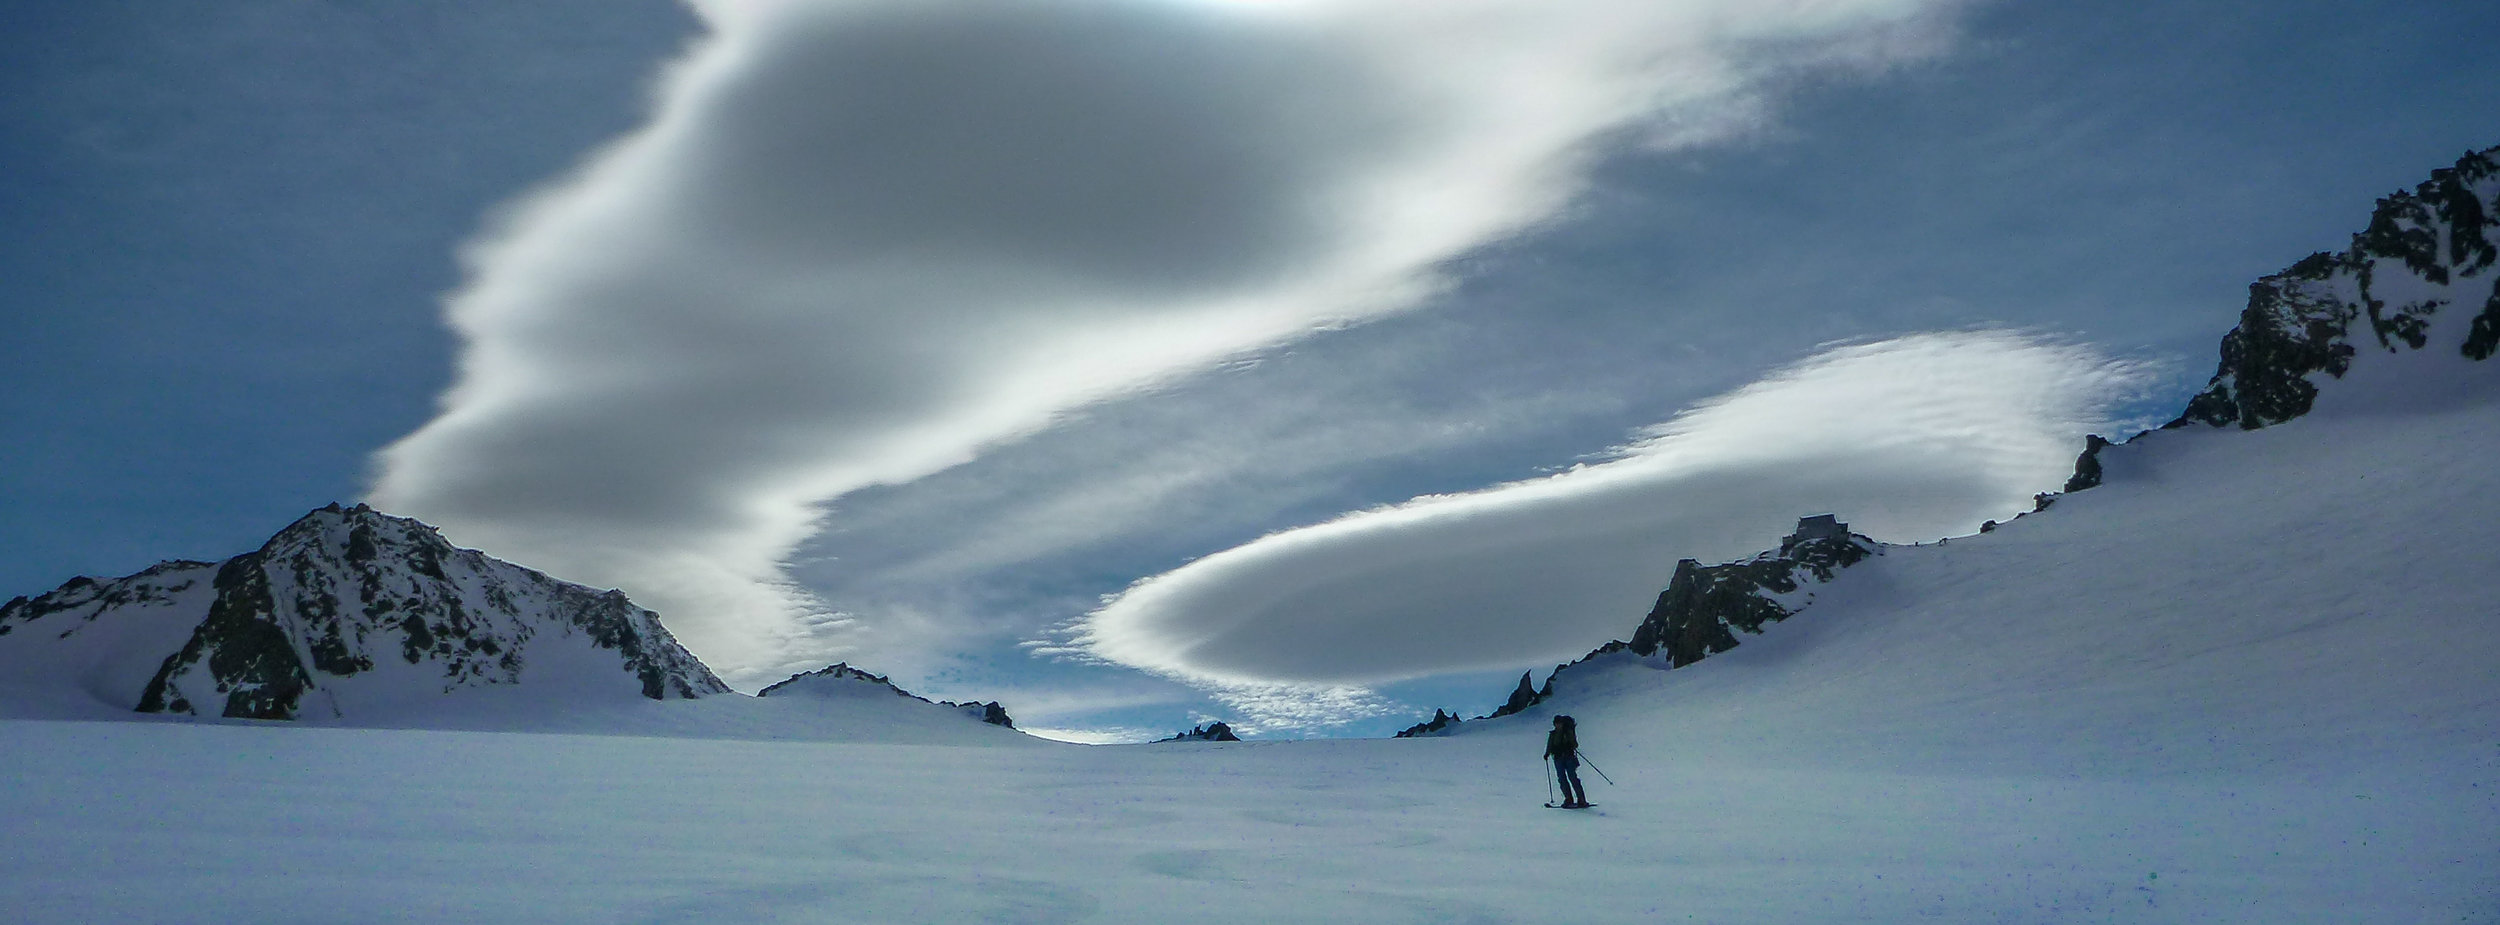 Lenticular Clouds over Tasman Glacier